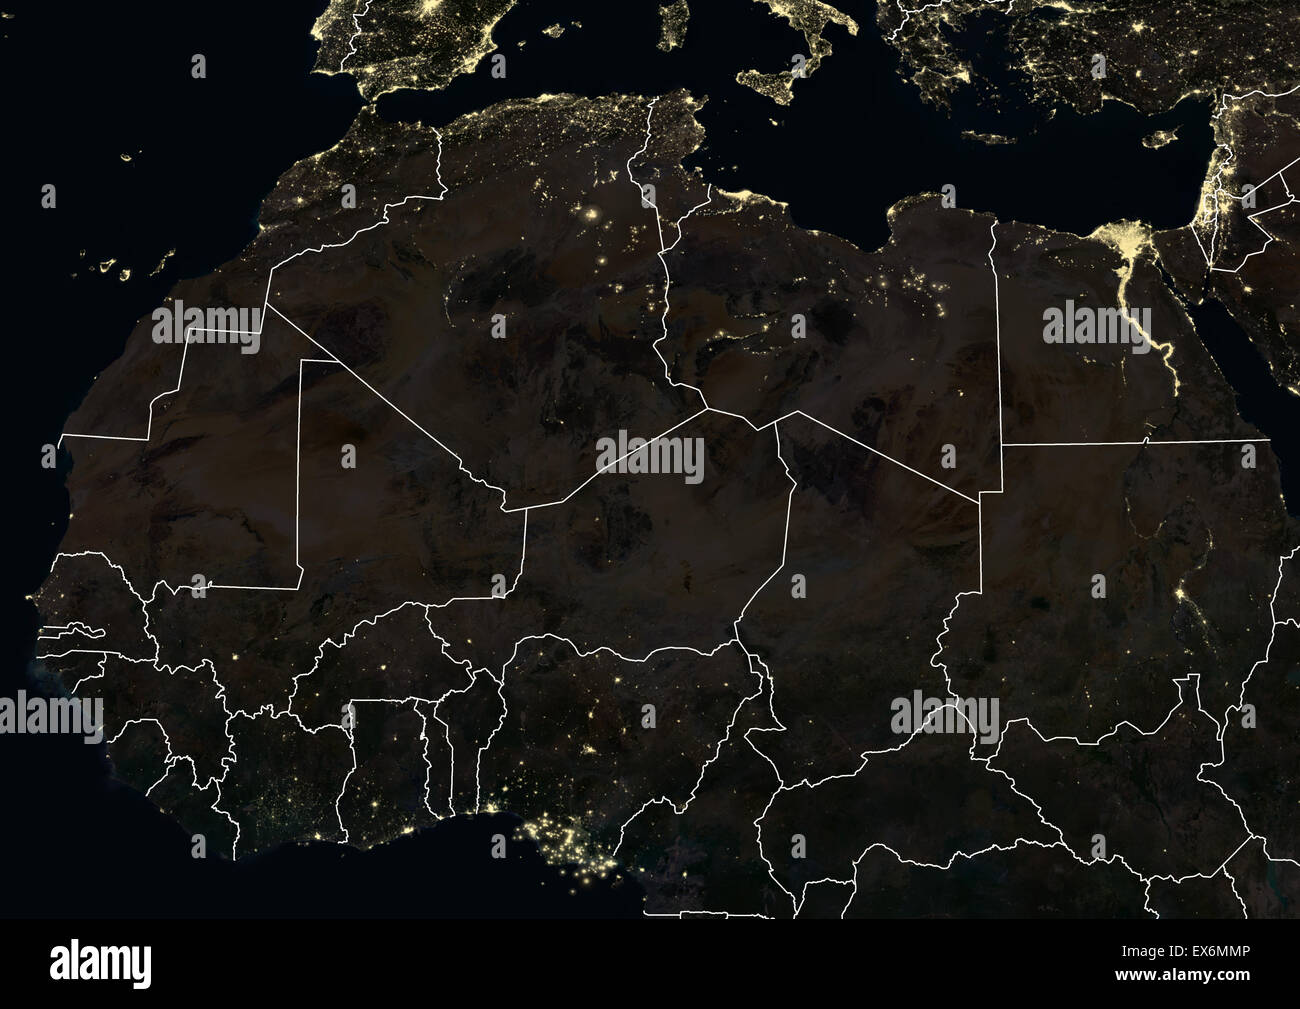 North And West Africa At Night In 2012. This Satellite Image With Country  Borders Shows